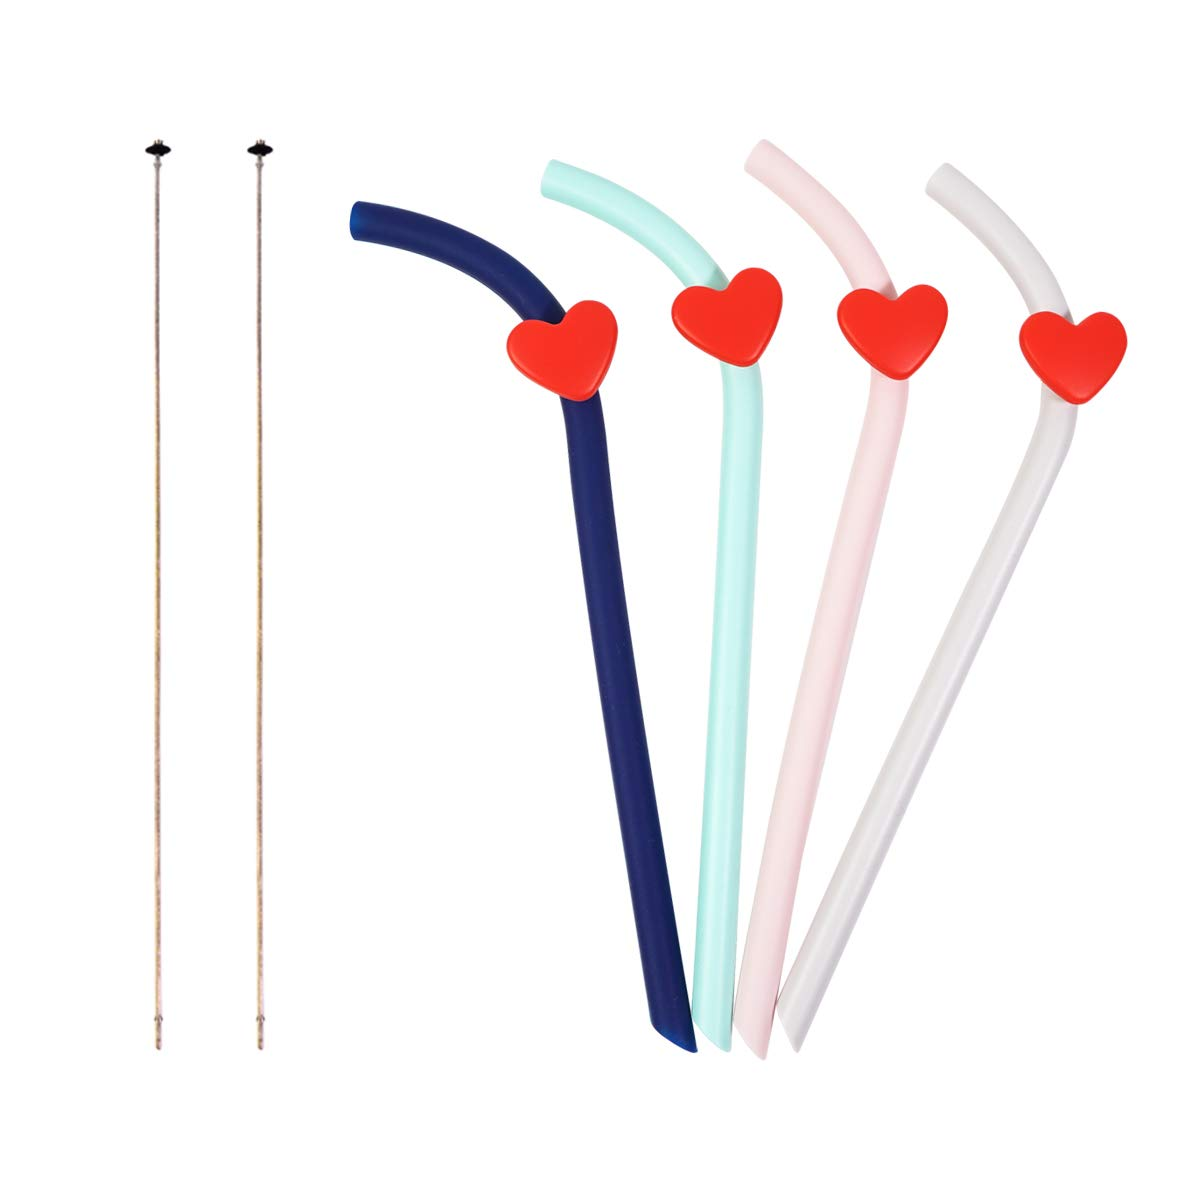 P&M Home Silicone Reusable Straws Collapsible Drinking Straws-Folding, Flexible,Portable Bendy Straws for Travel Home and Office,with Cleaning Brushes BPA Free, Eco Friendly (4 Pack with 1 Brushes)